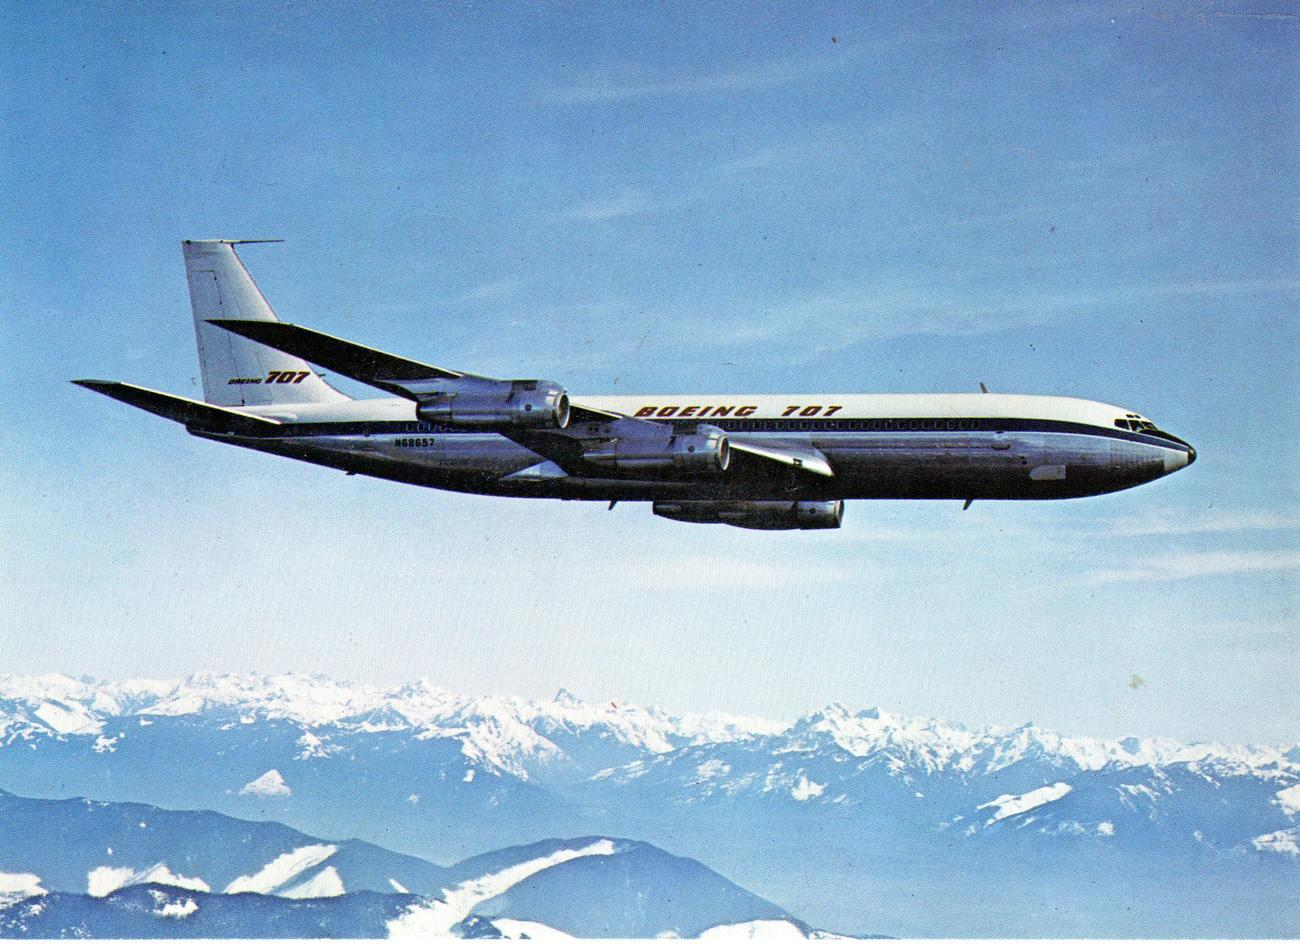 Boeing 707 Intercontinental postcard